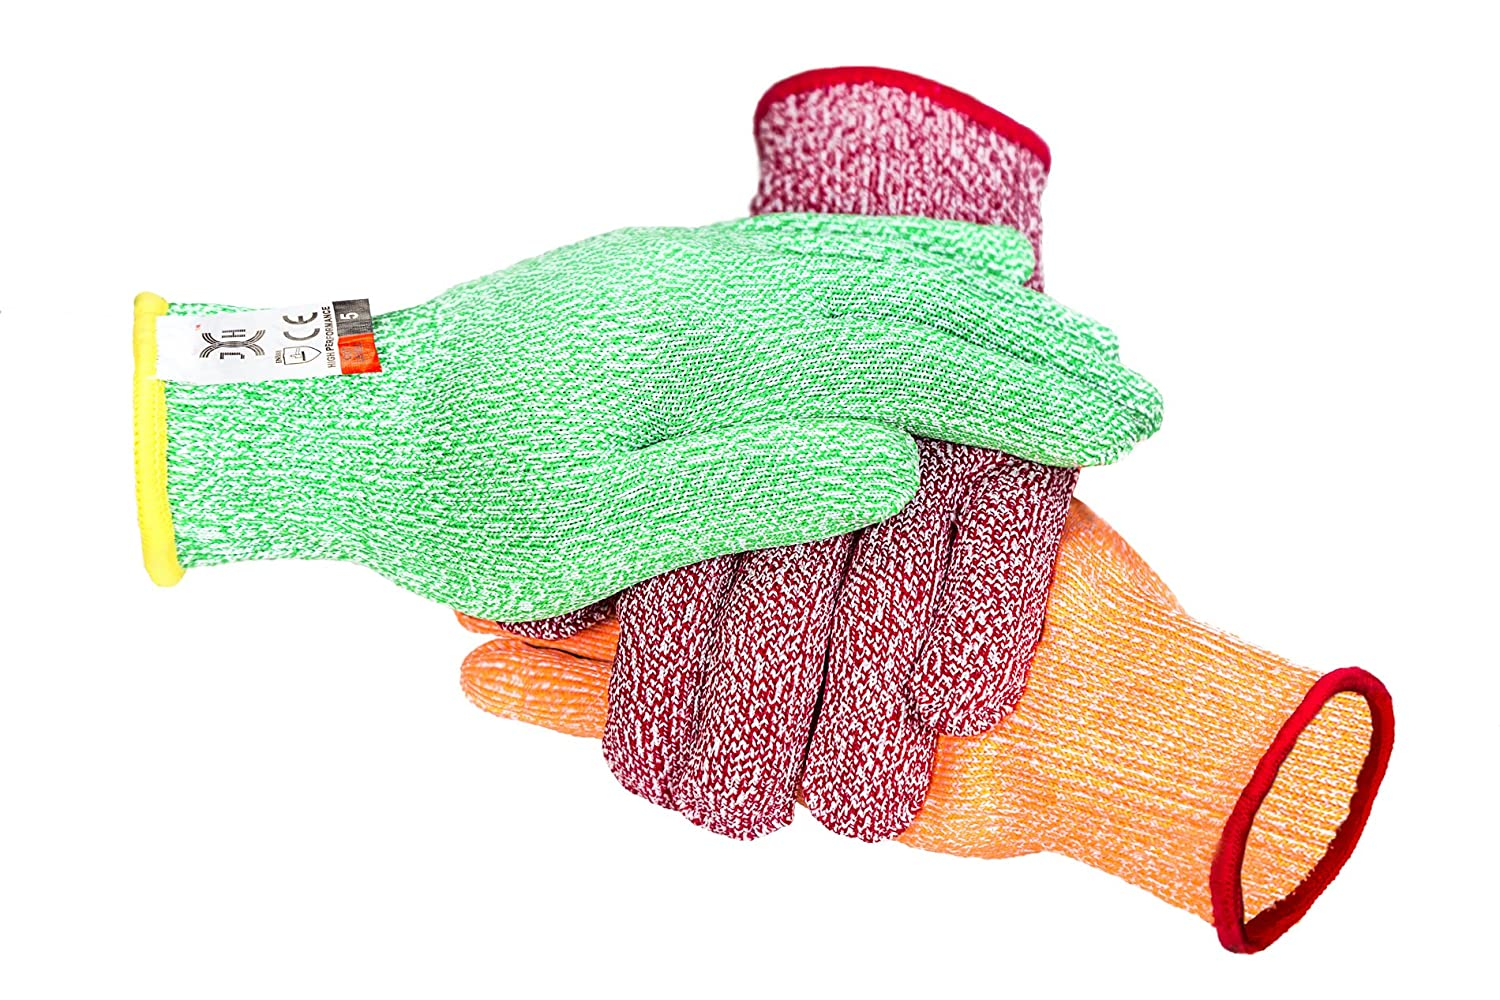 C0222S3 3 Color Cut Resistant Gloves Red For Meat, Green For Veg, Yellow For Fruit- High Performance Cut Level 5, Food Grade No Cross Contam, 3Piece Small